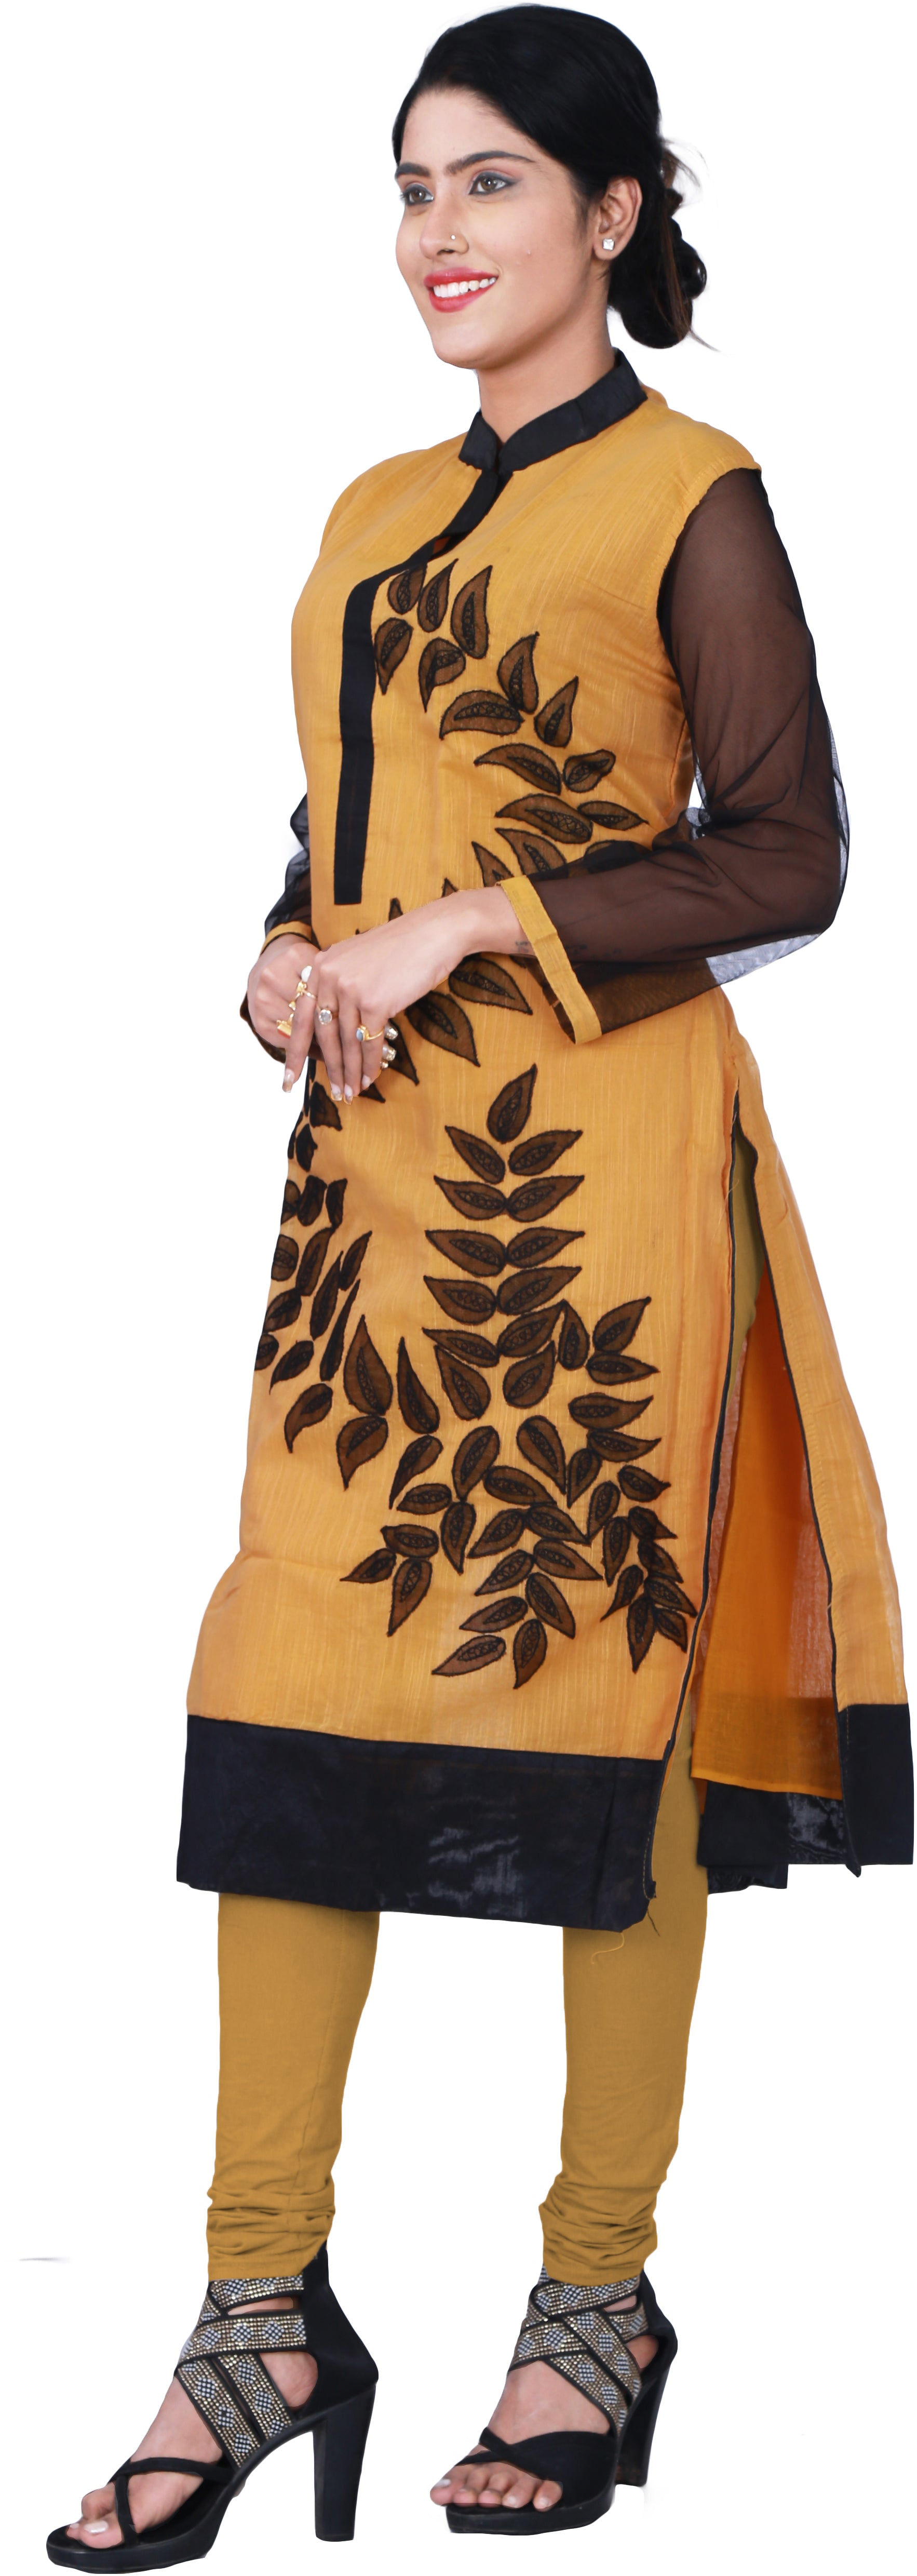 SMSAREE Yellow & Black Designer Casual Partywear Cotton (Chanderi) & Net Sleeves Thread Hand Embroidery Work Stylish Women Kurti Kurta With Free Matching Leggings GKB158